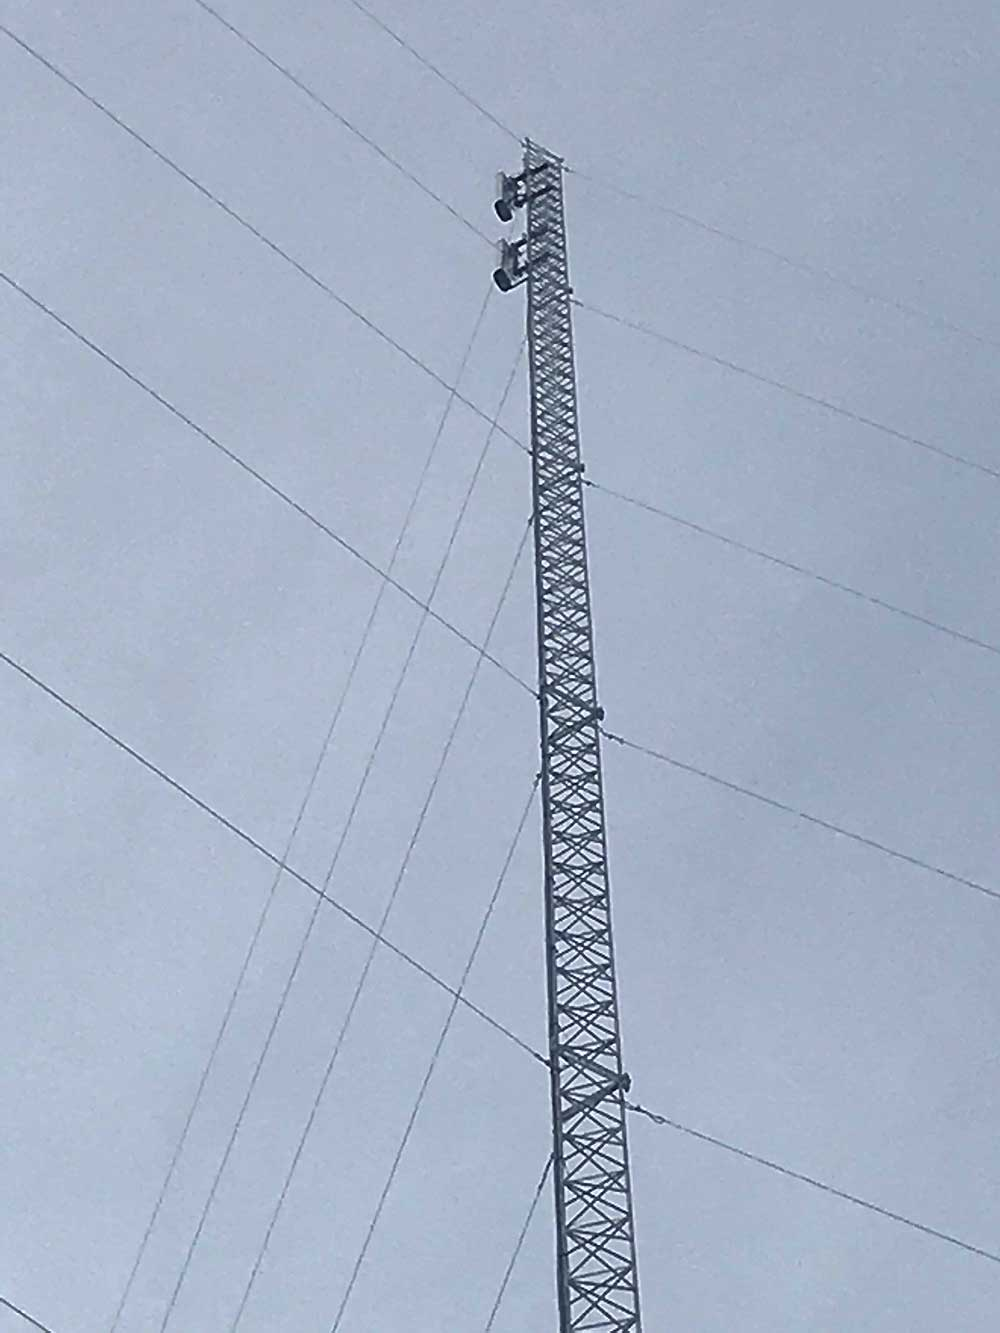 Dave and G Spotter Antennas supplied all the necassary Antenna & Cabling Equipment